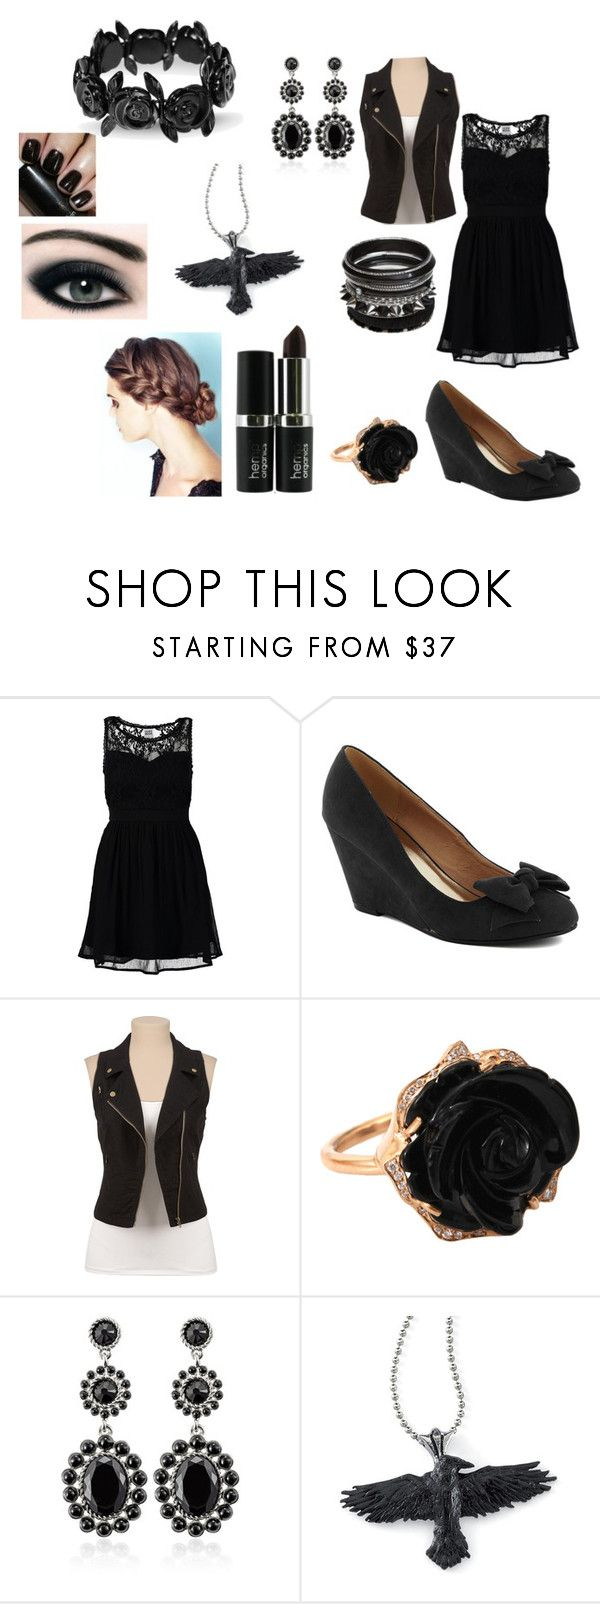 """Jordan Gilbert's Party outfit"" by shianne77 ❤ liked on Polyvore featuring Vero Moda, Hostess, Irene Neuwirth, White House Black Market, CK One and Carven"